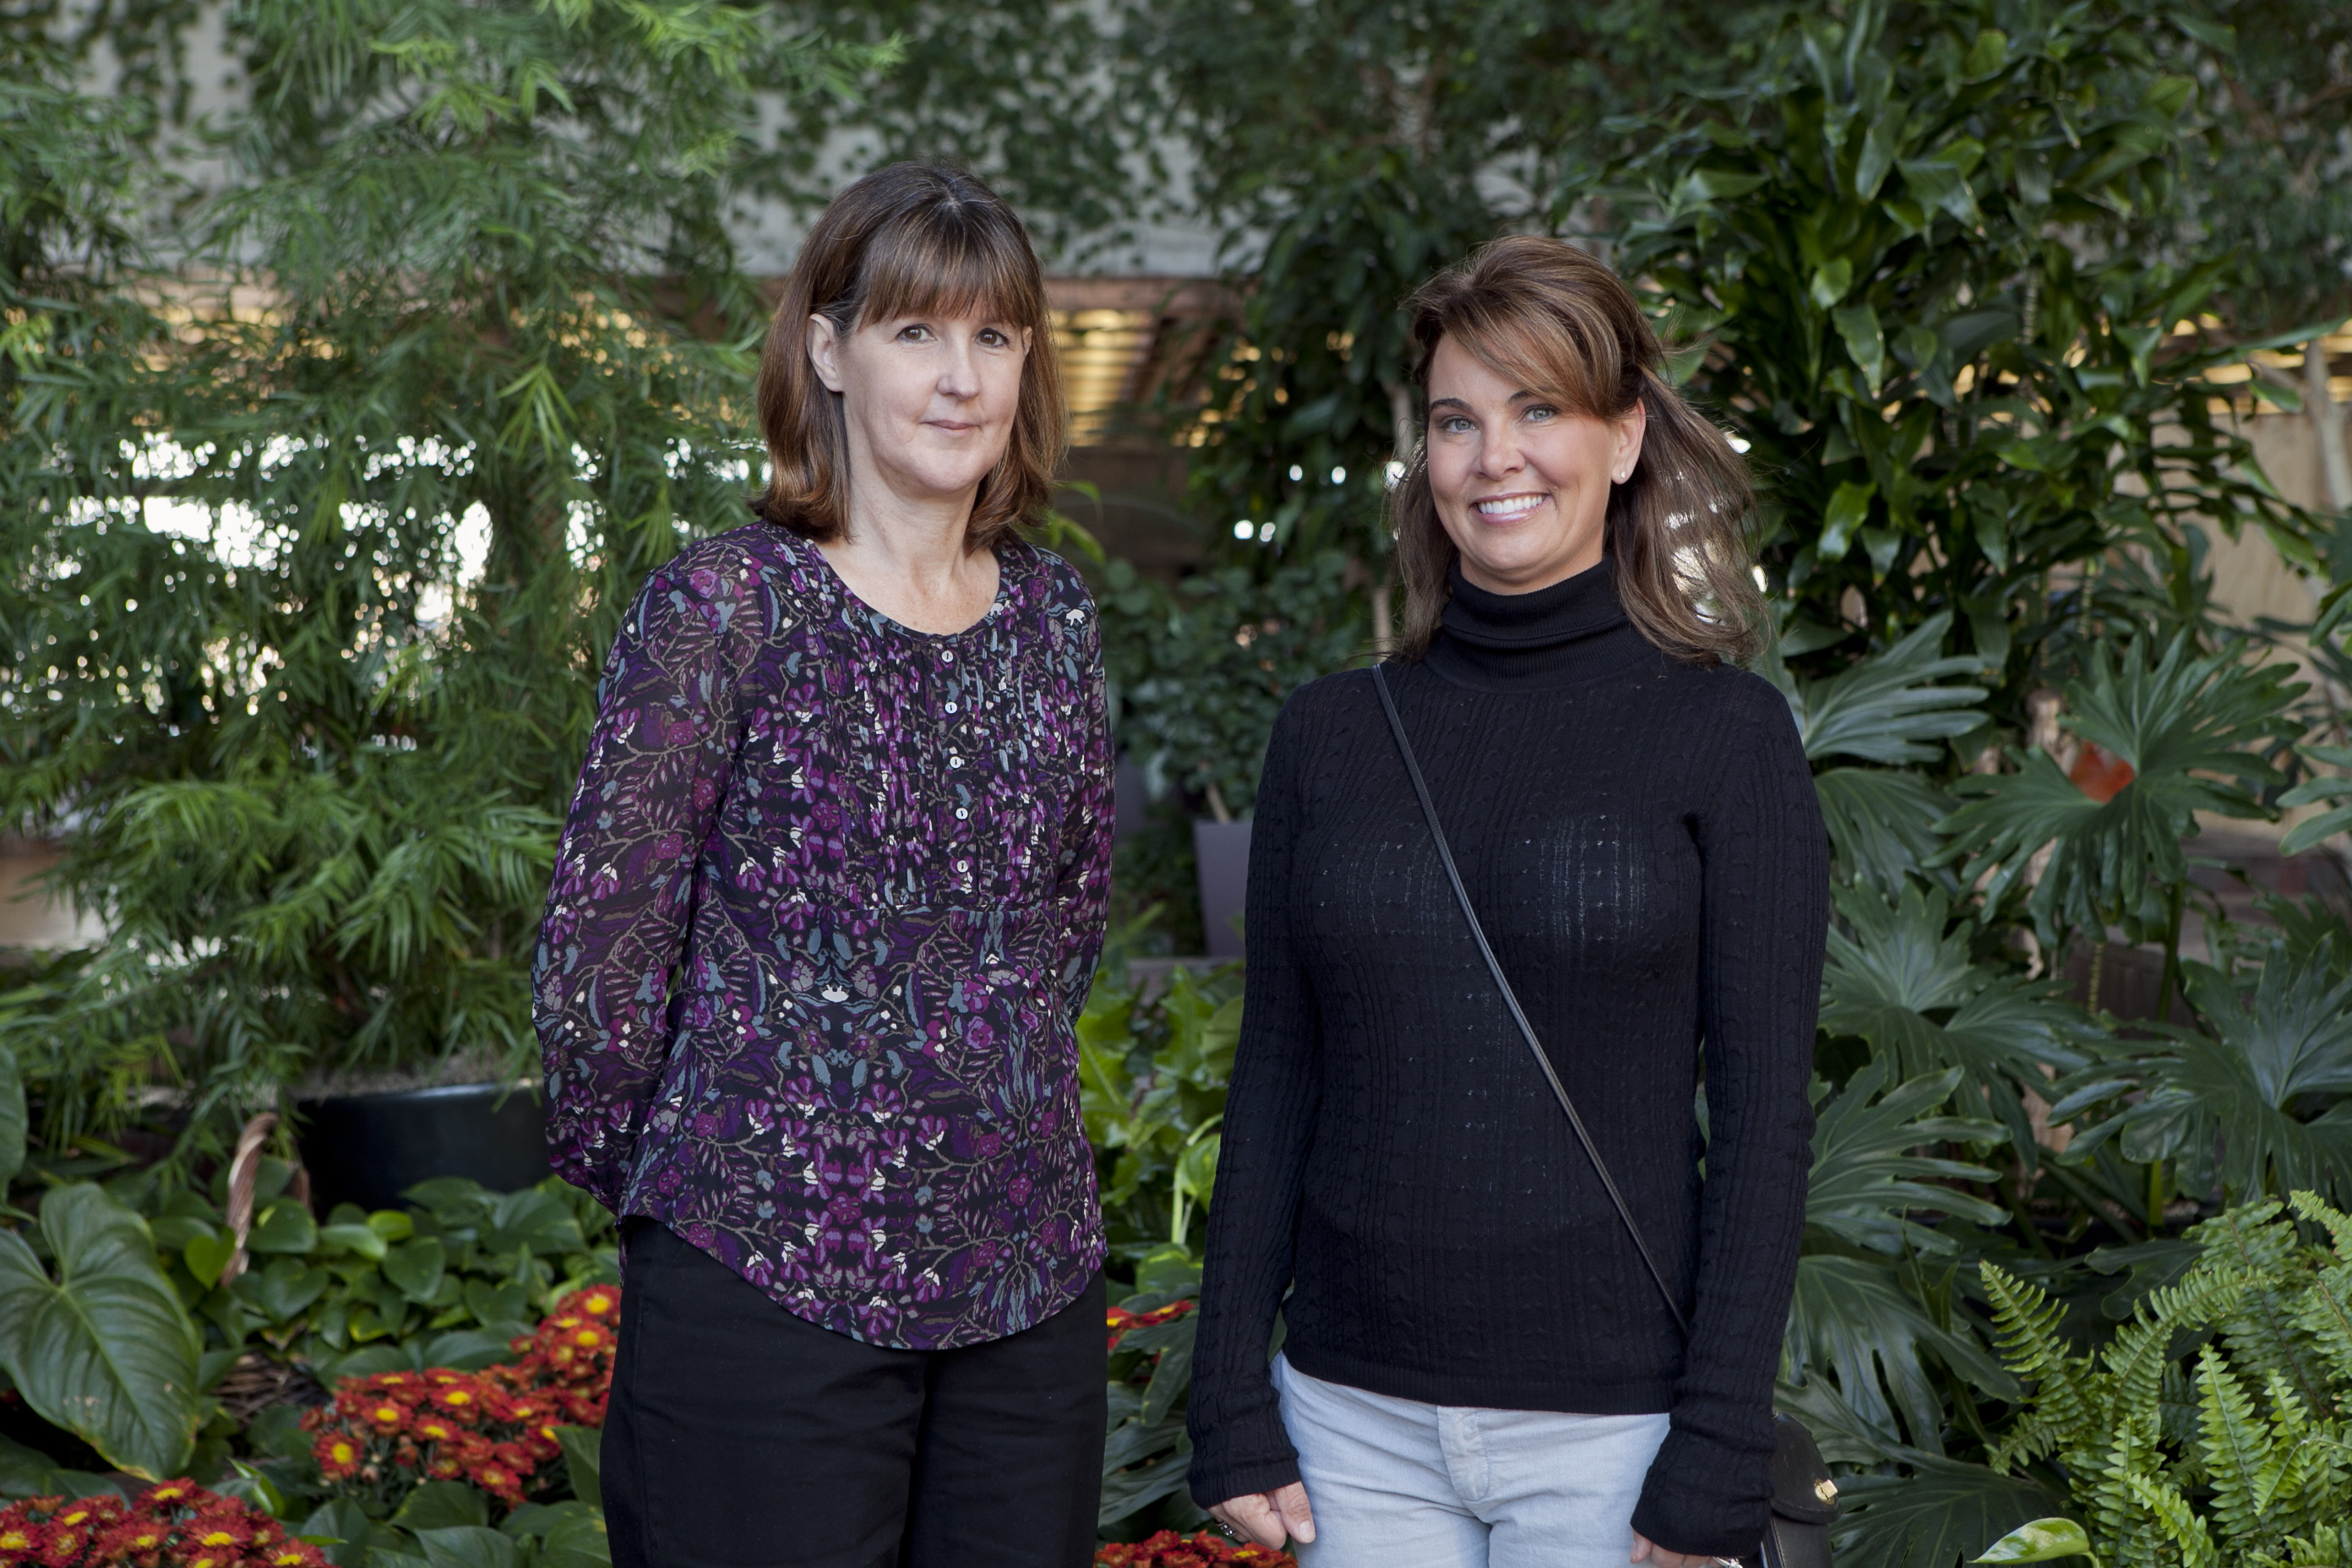 From left: Barbara Hehner, WDRS and Deanne Slapa, WDRS. Photo: Cindy Arnold